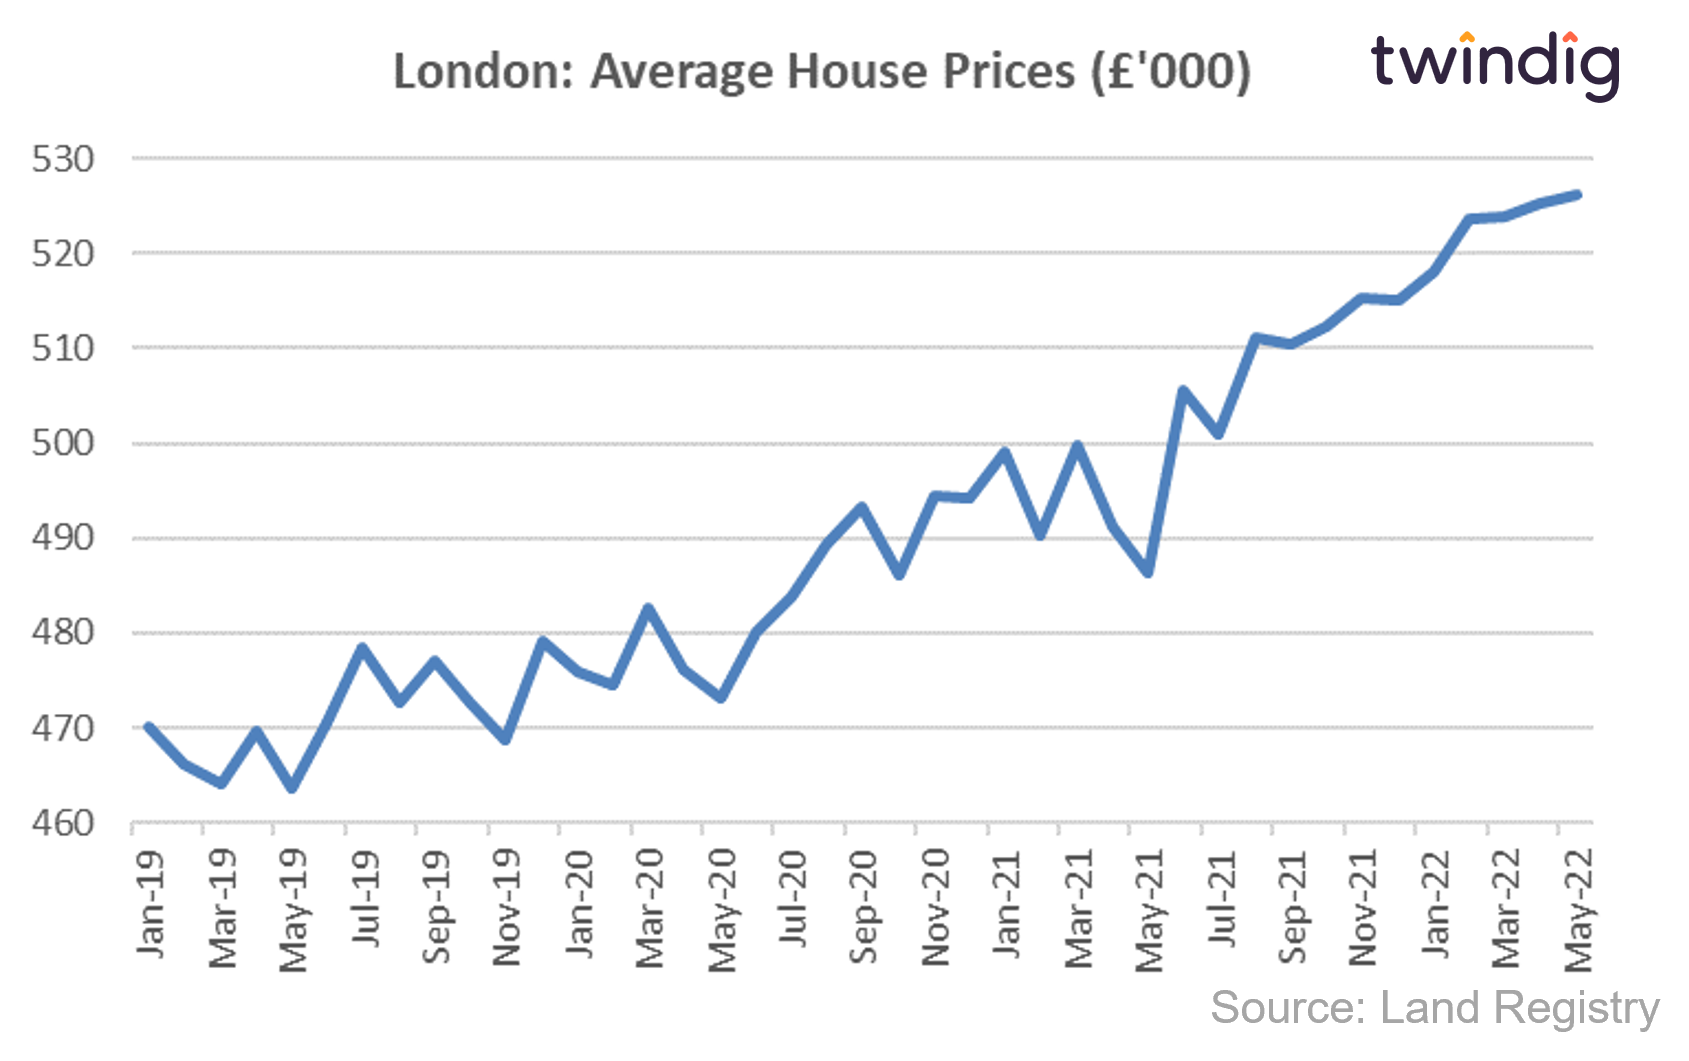 House price graph chart showing average house prices in London